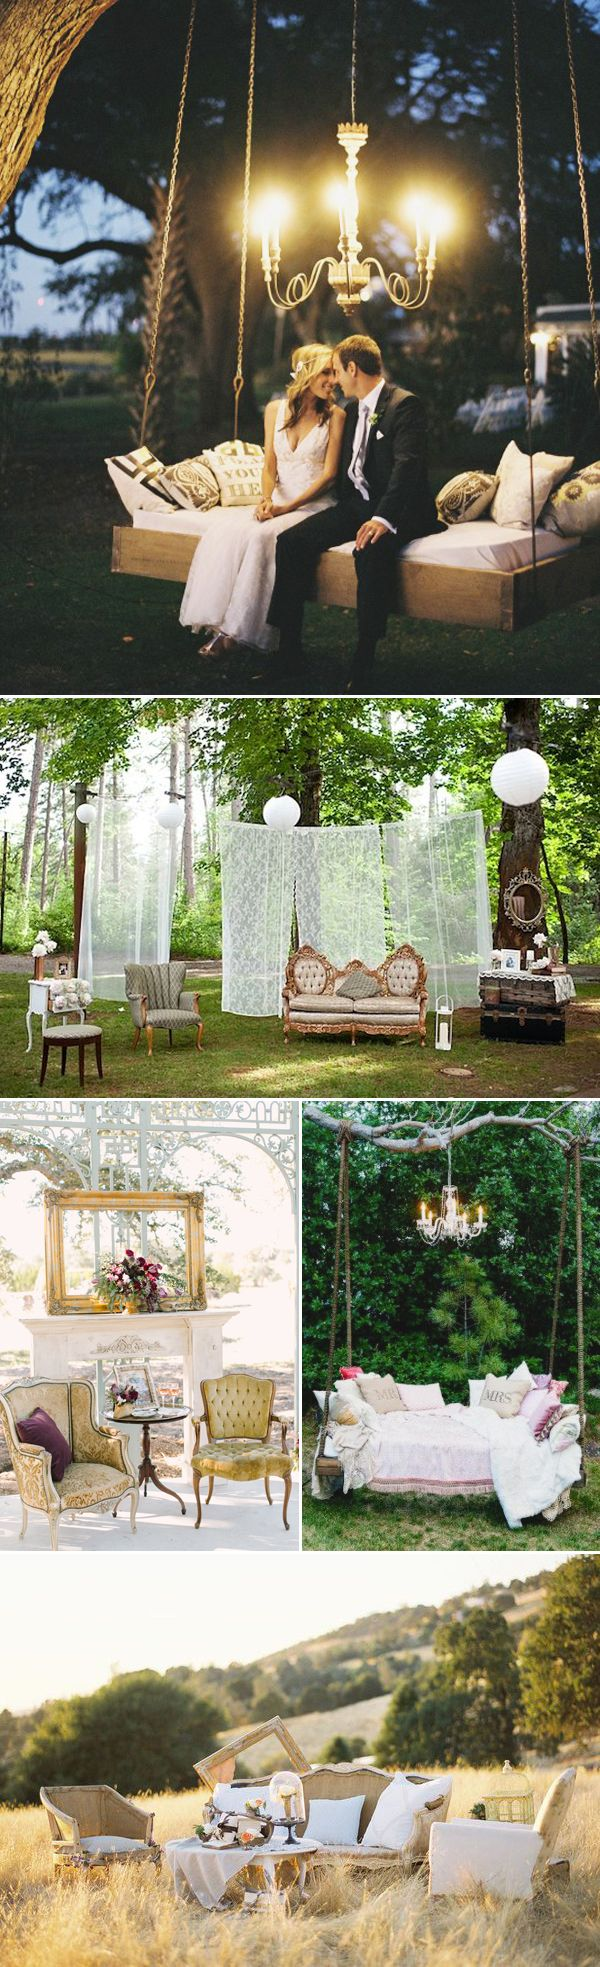 Styled Photo Area Wedding Backdrop / http://www.deerpearlflowers.com/53-super-creative-wedding-photo-backdrops/